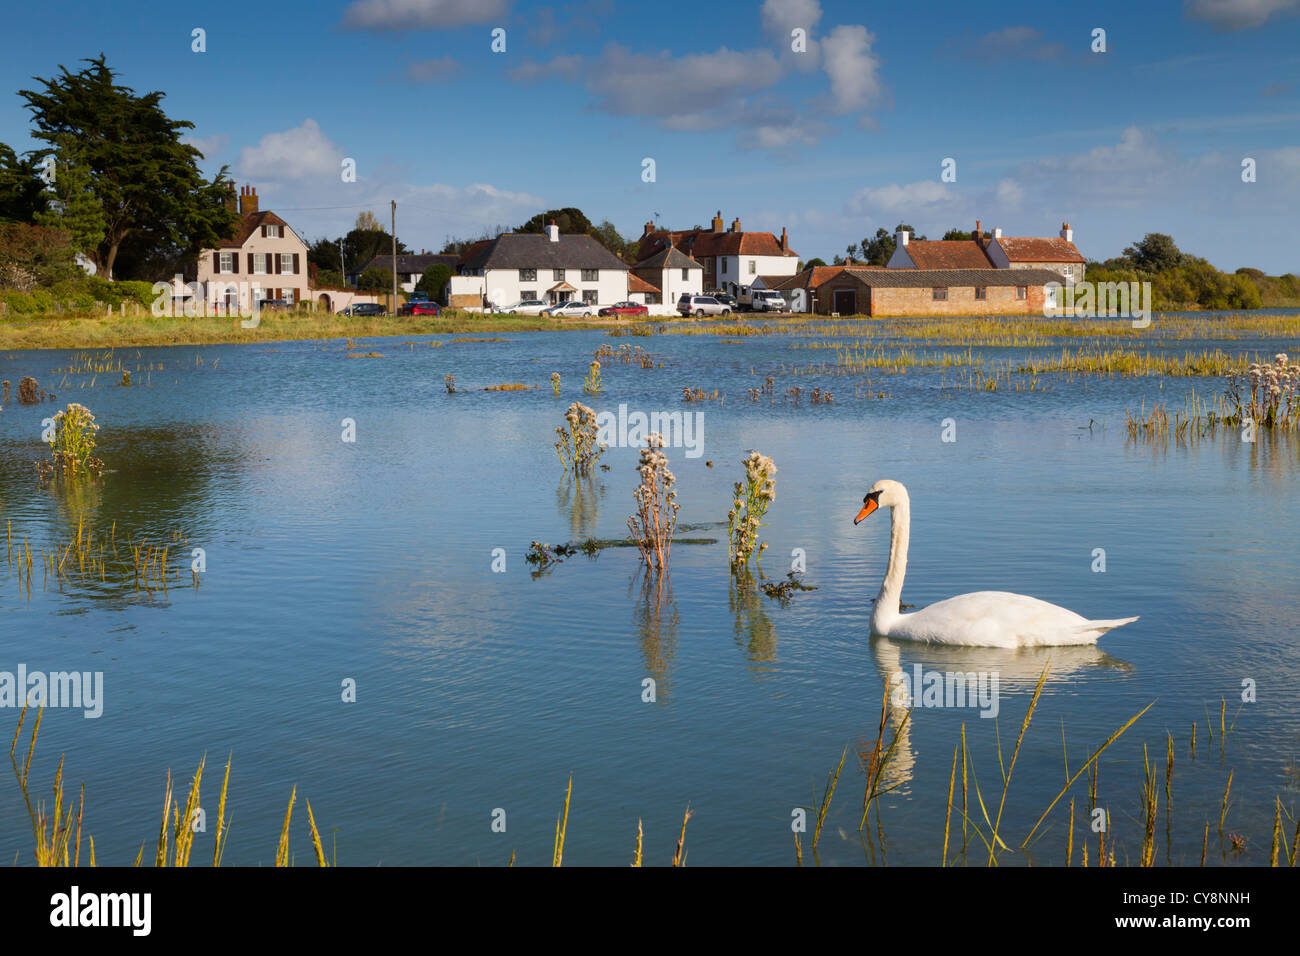 Pagham Harbour; Sidlesham Quay; West Sussex; UK; high tide; swan - Stock Image